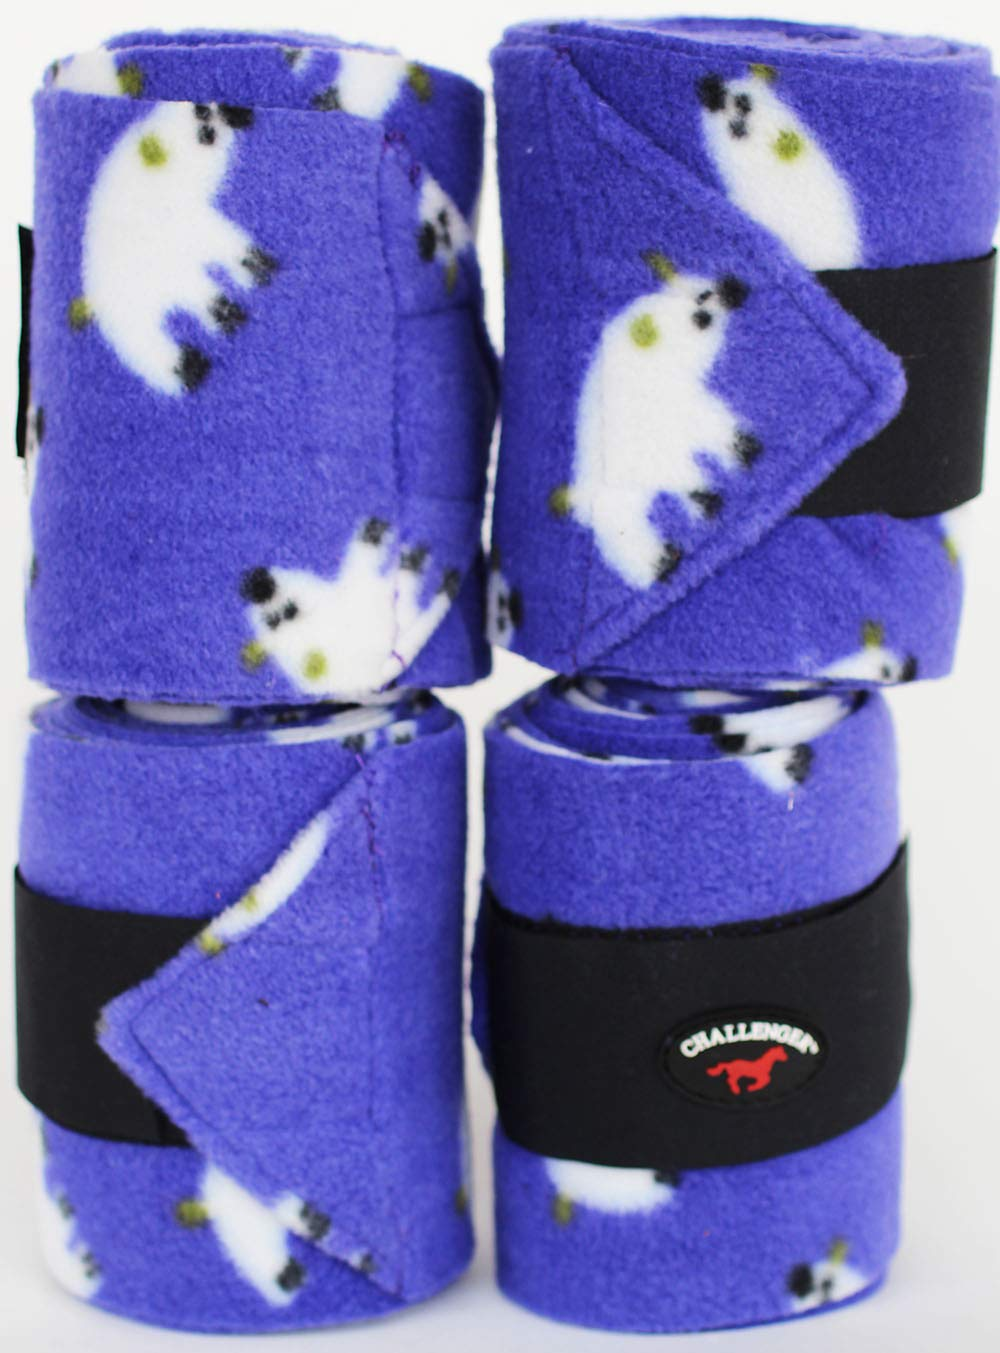 CHALLENGER Horse Tack Grooming Leg Set of 4 Polo Wrap 95R25 by CHALLENGER